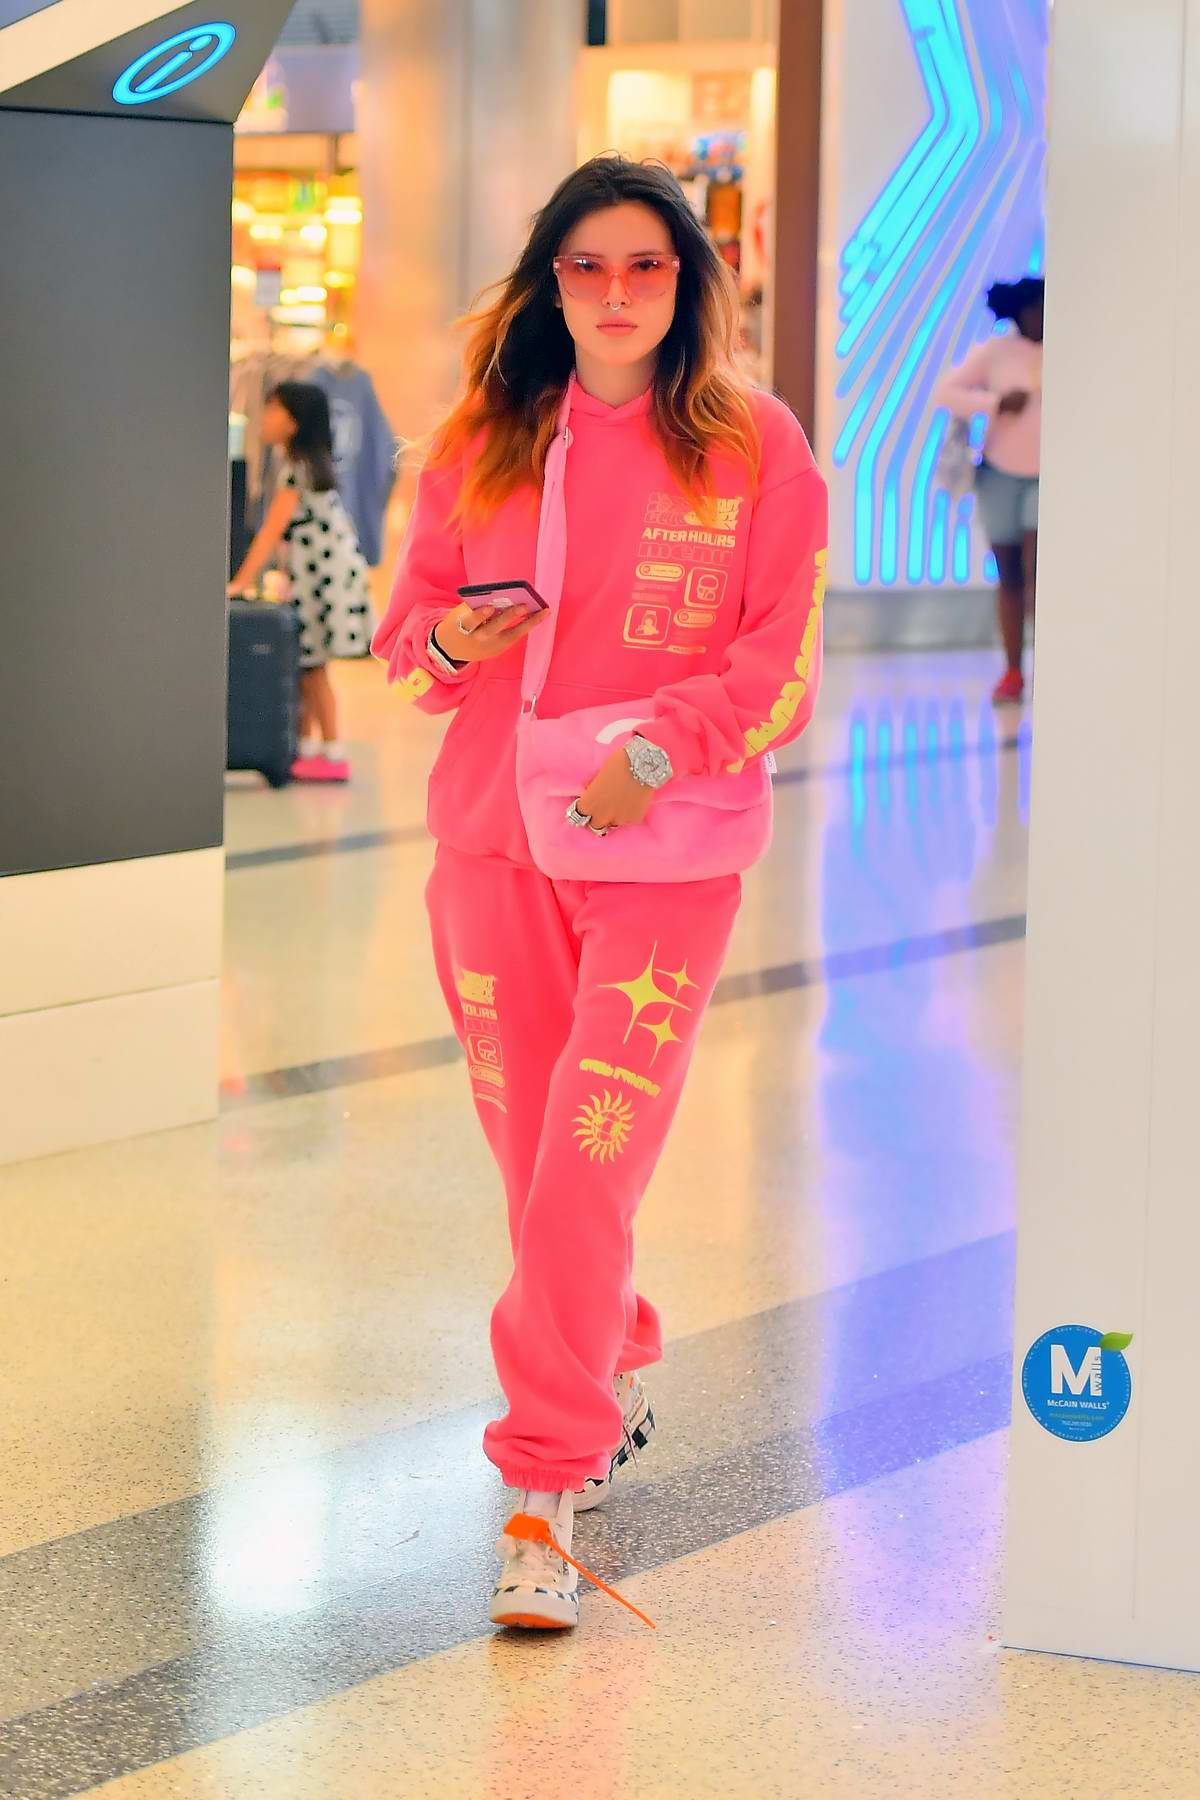 Bella Thorne sports all-pink sweatsuit as she jets out of LAX airport in Los Angeles